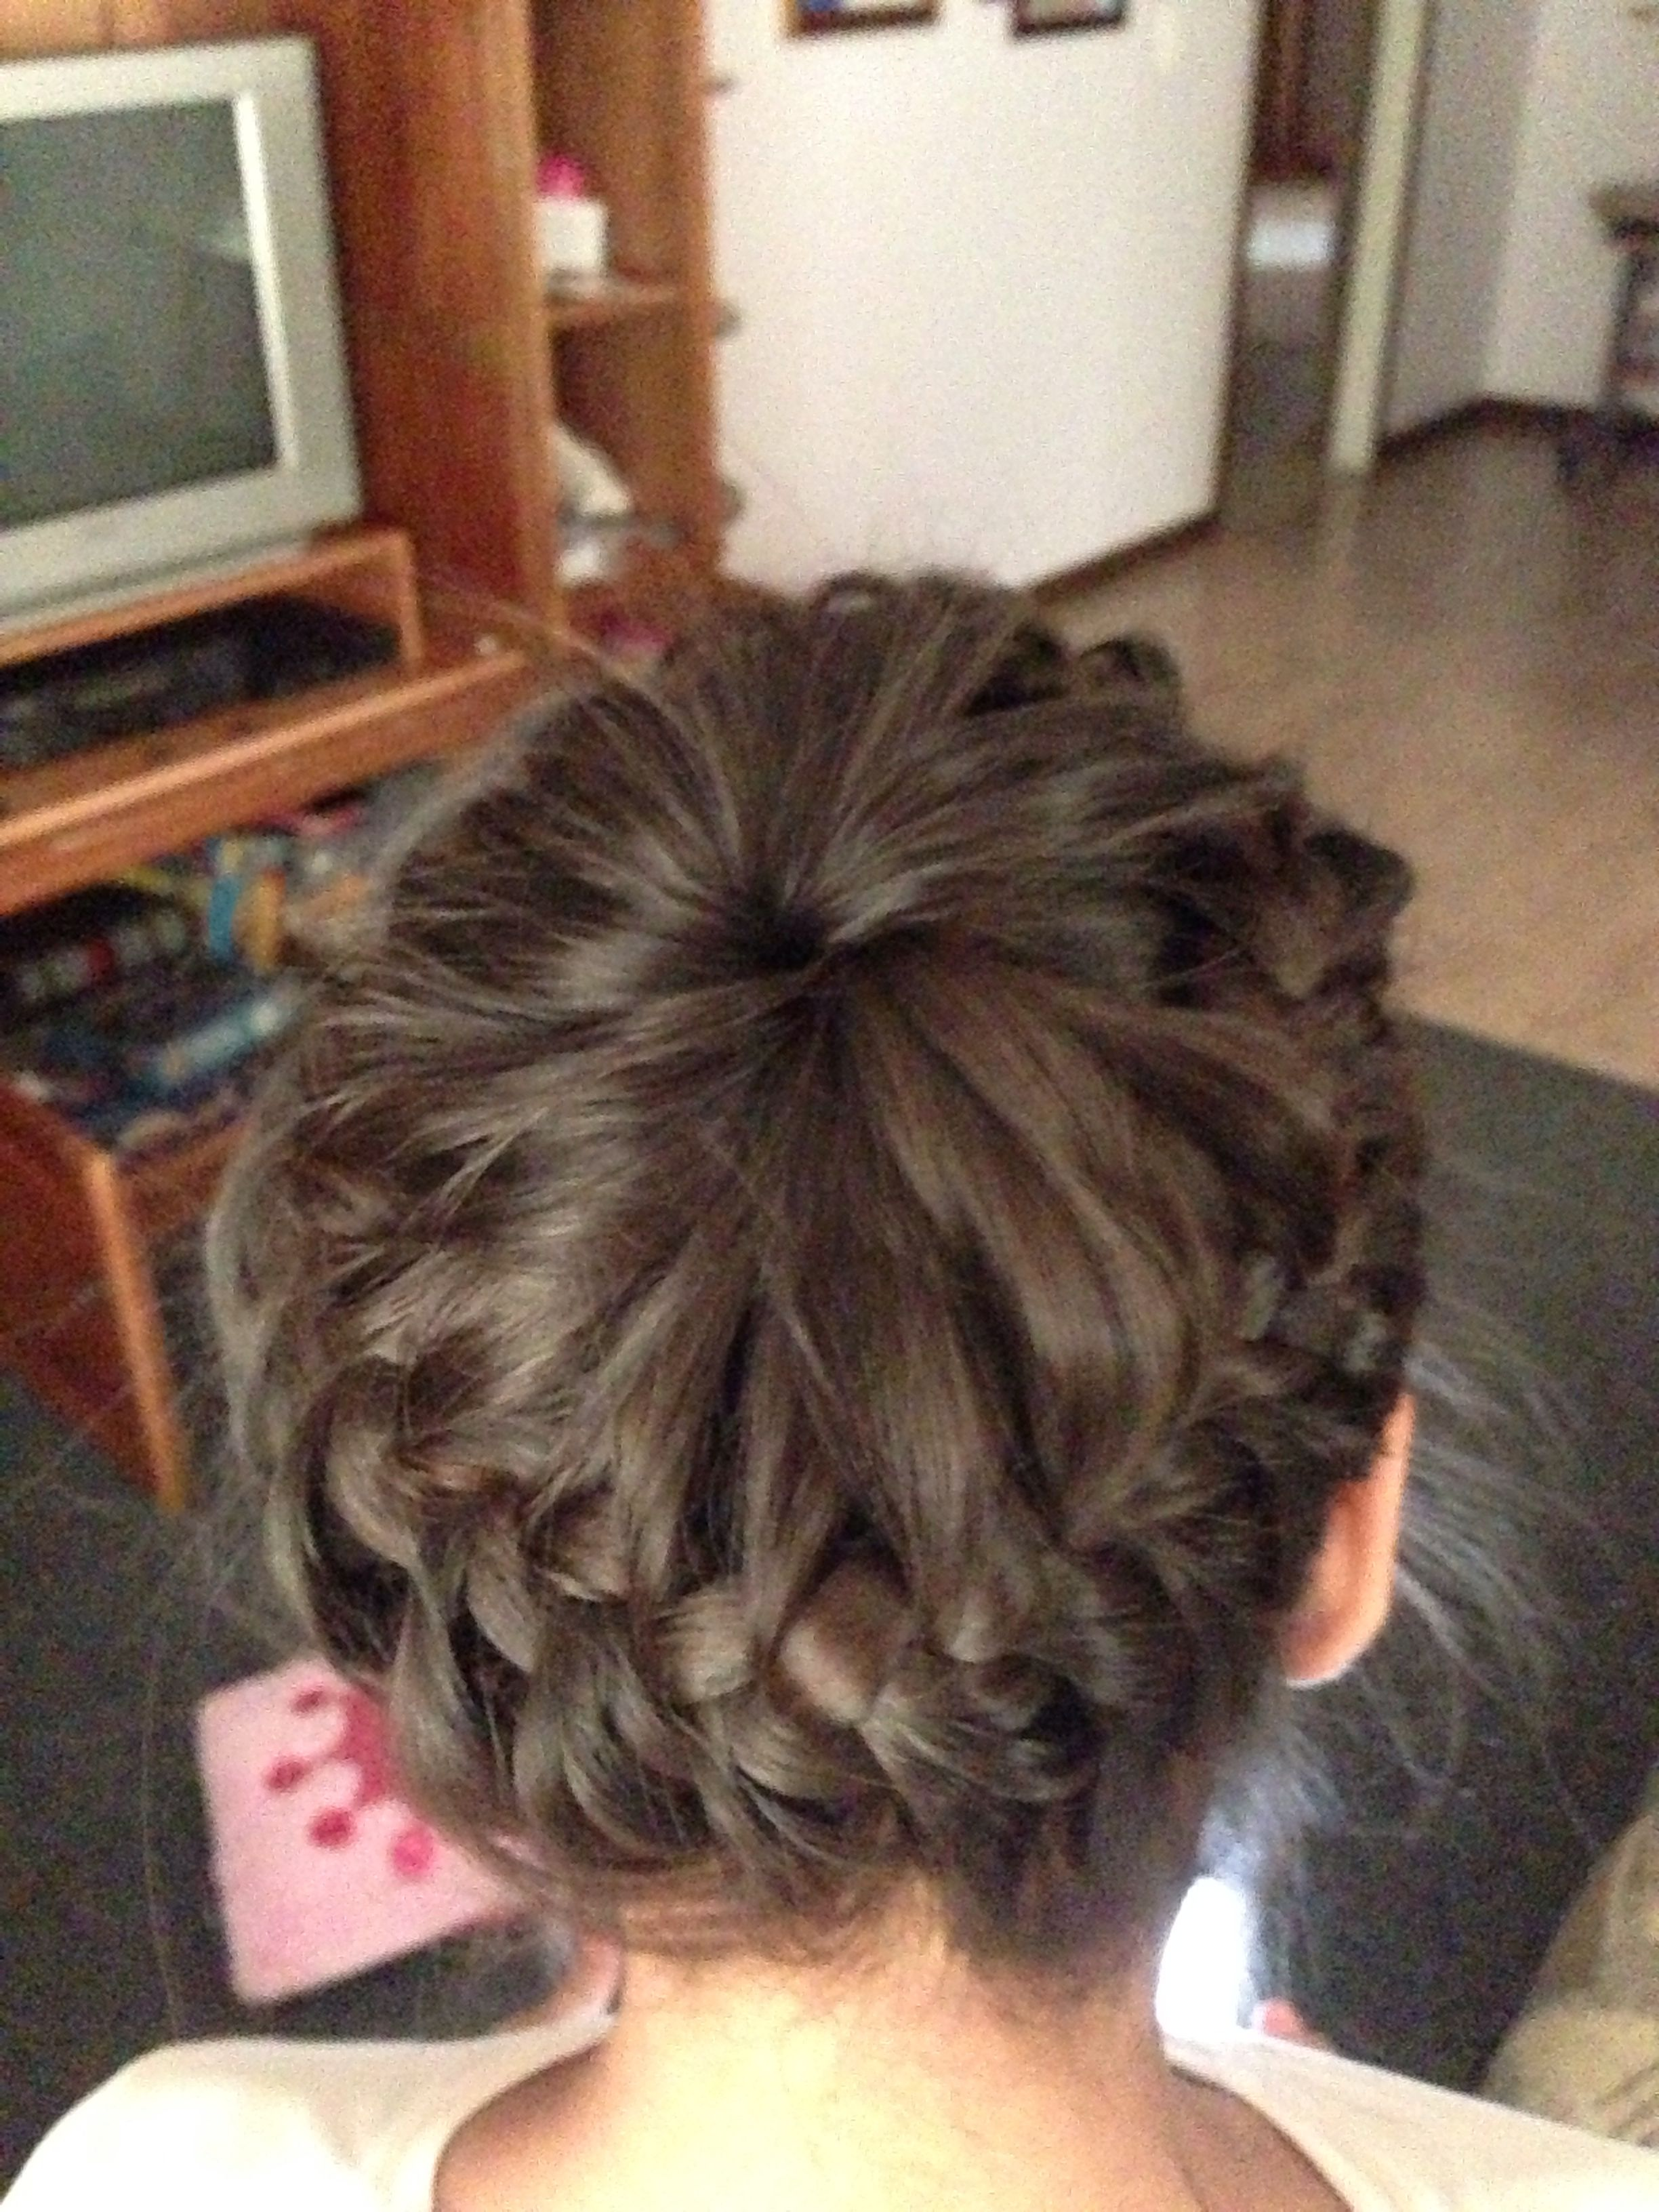 A never ending french braid or also called a starbust crown braid